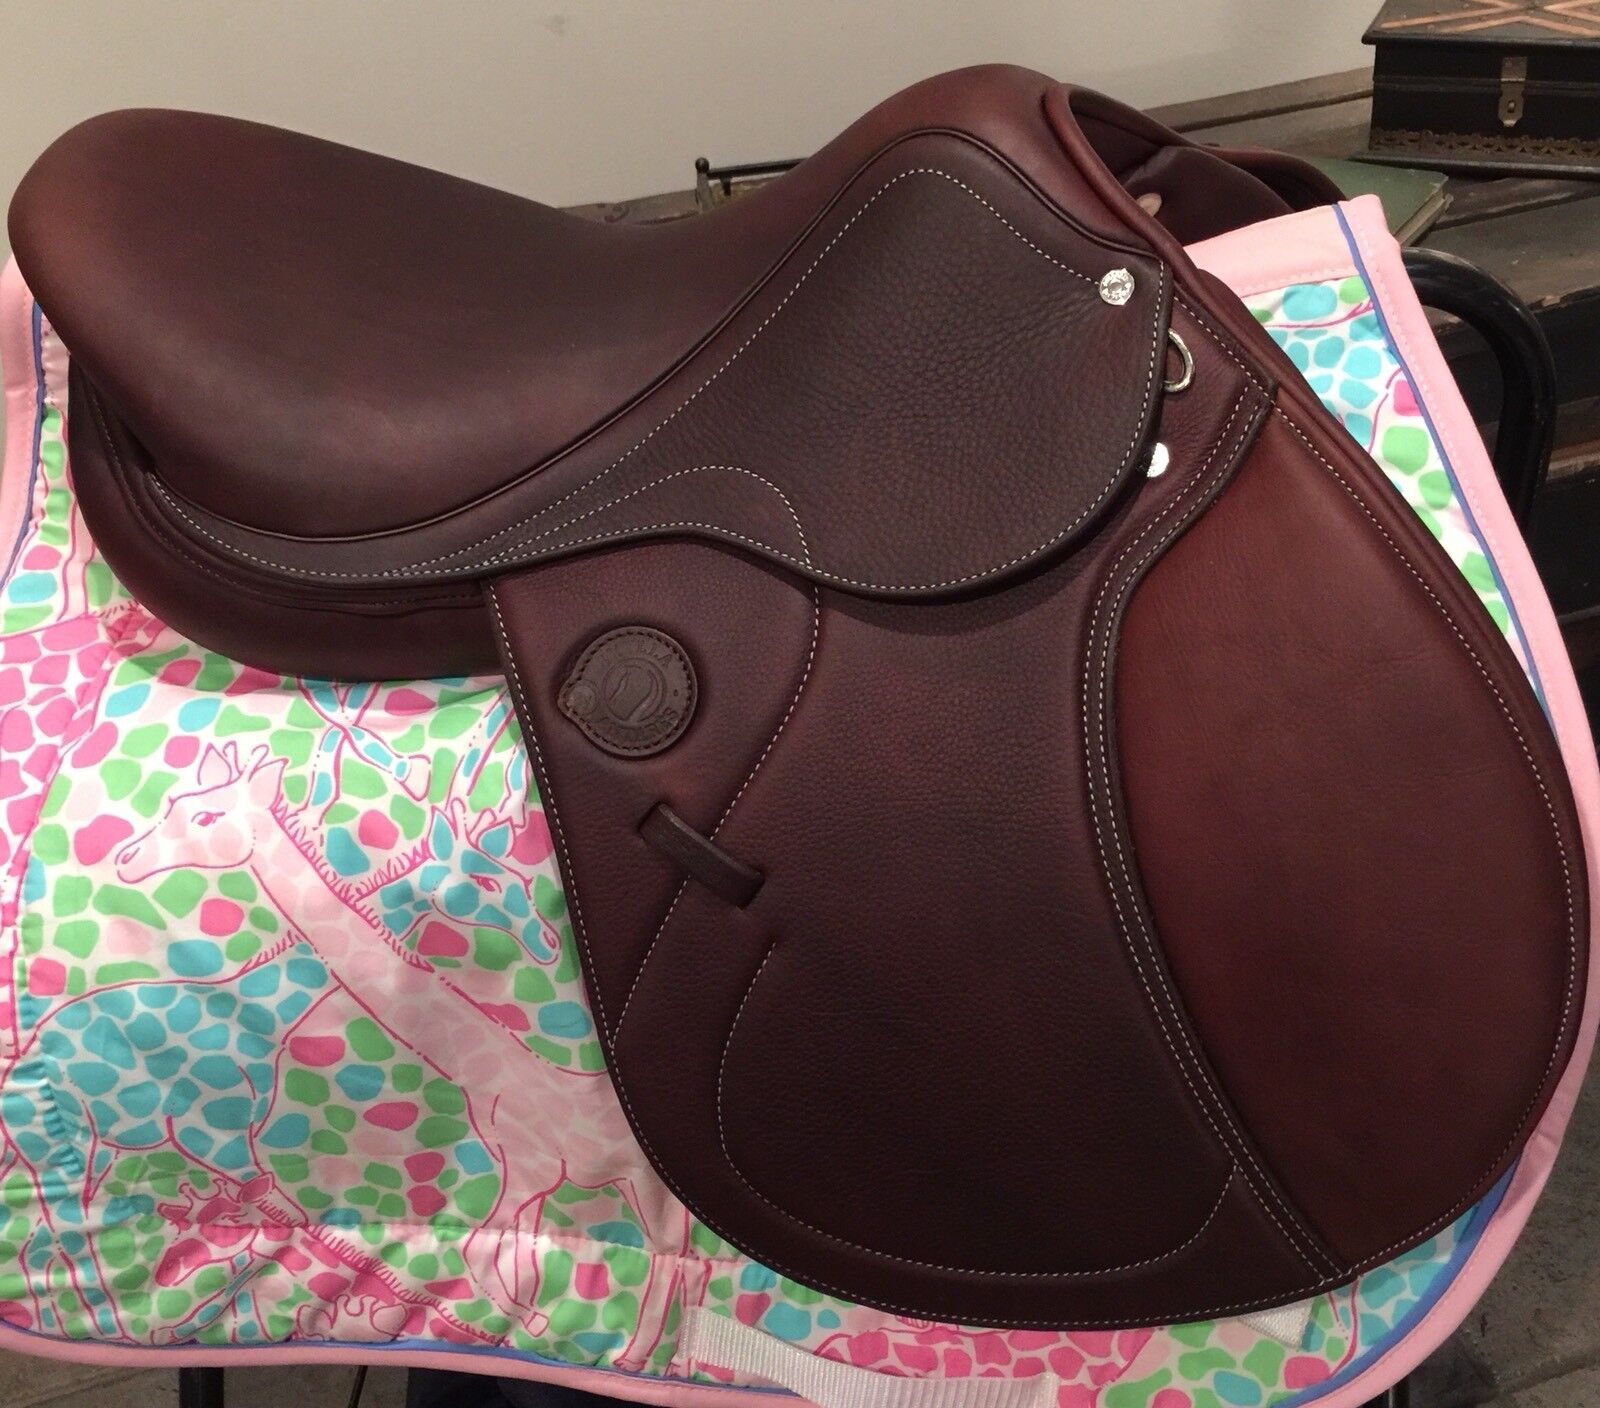 ANTARES CLOSE CONTACT SKYLLA CALFSKIN SADDLE 17.5 wide tree 3N FLAP  NWT